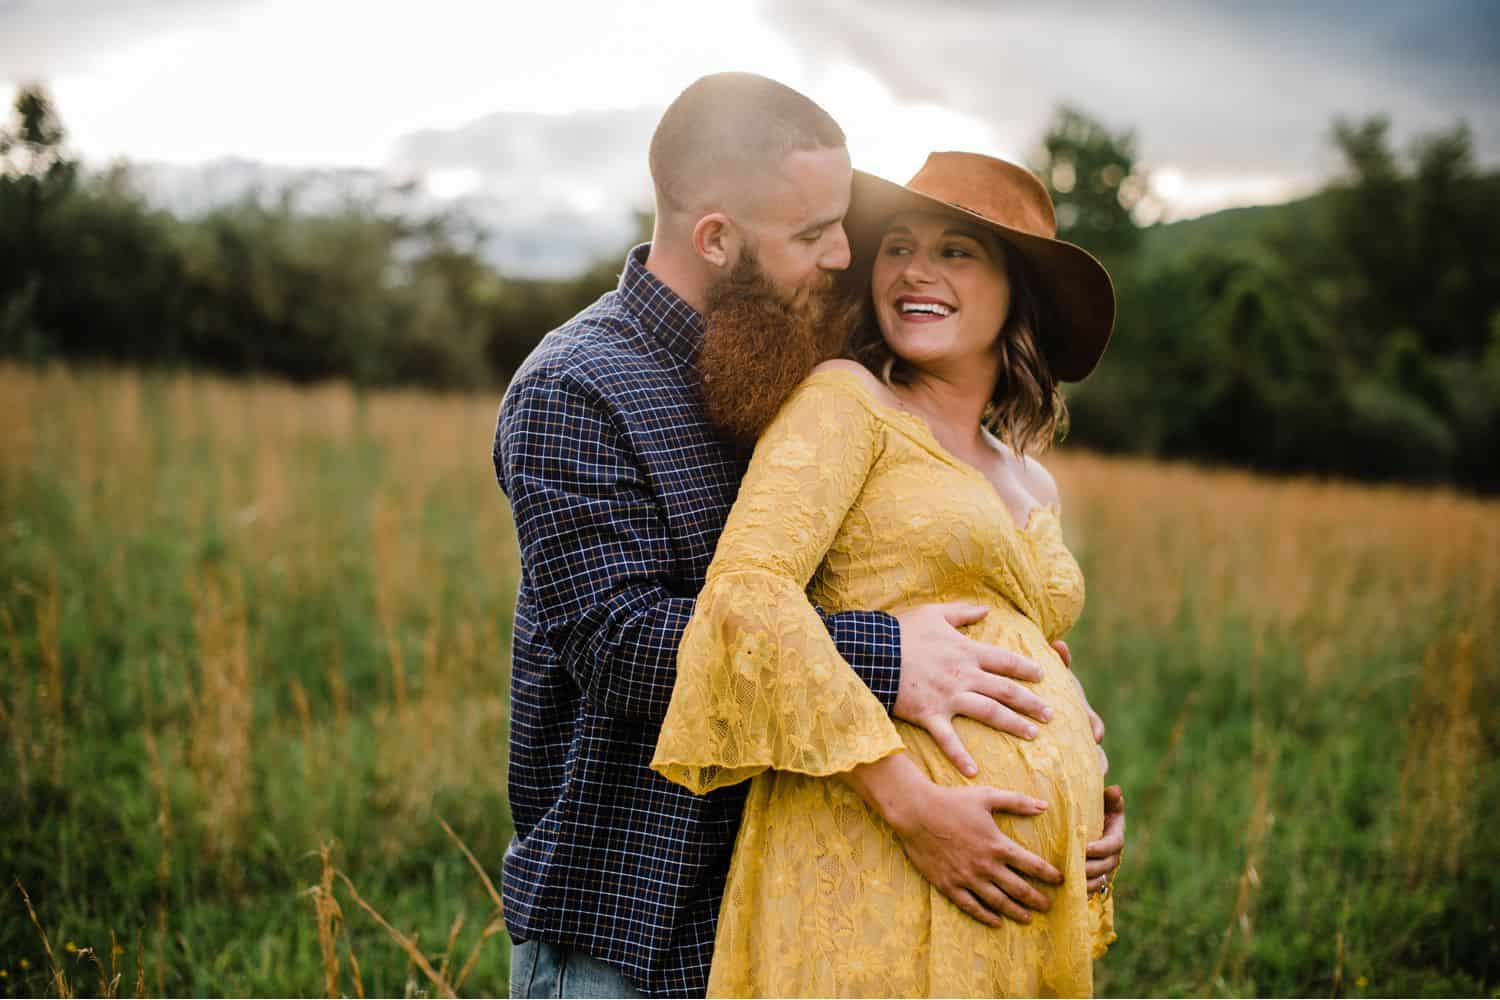 Maternity Poses: man with a plaid shirt and beard pulls his wife close, cradling her belly. She is wearing a brown felt hat and a yellow lace dress.